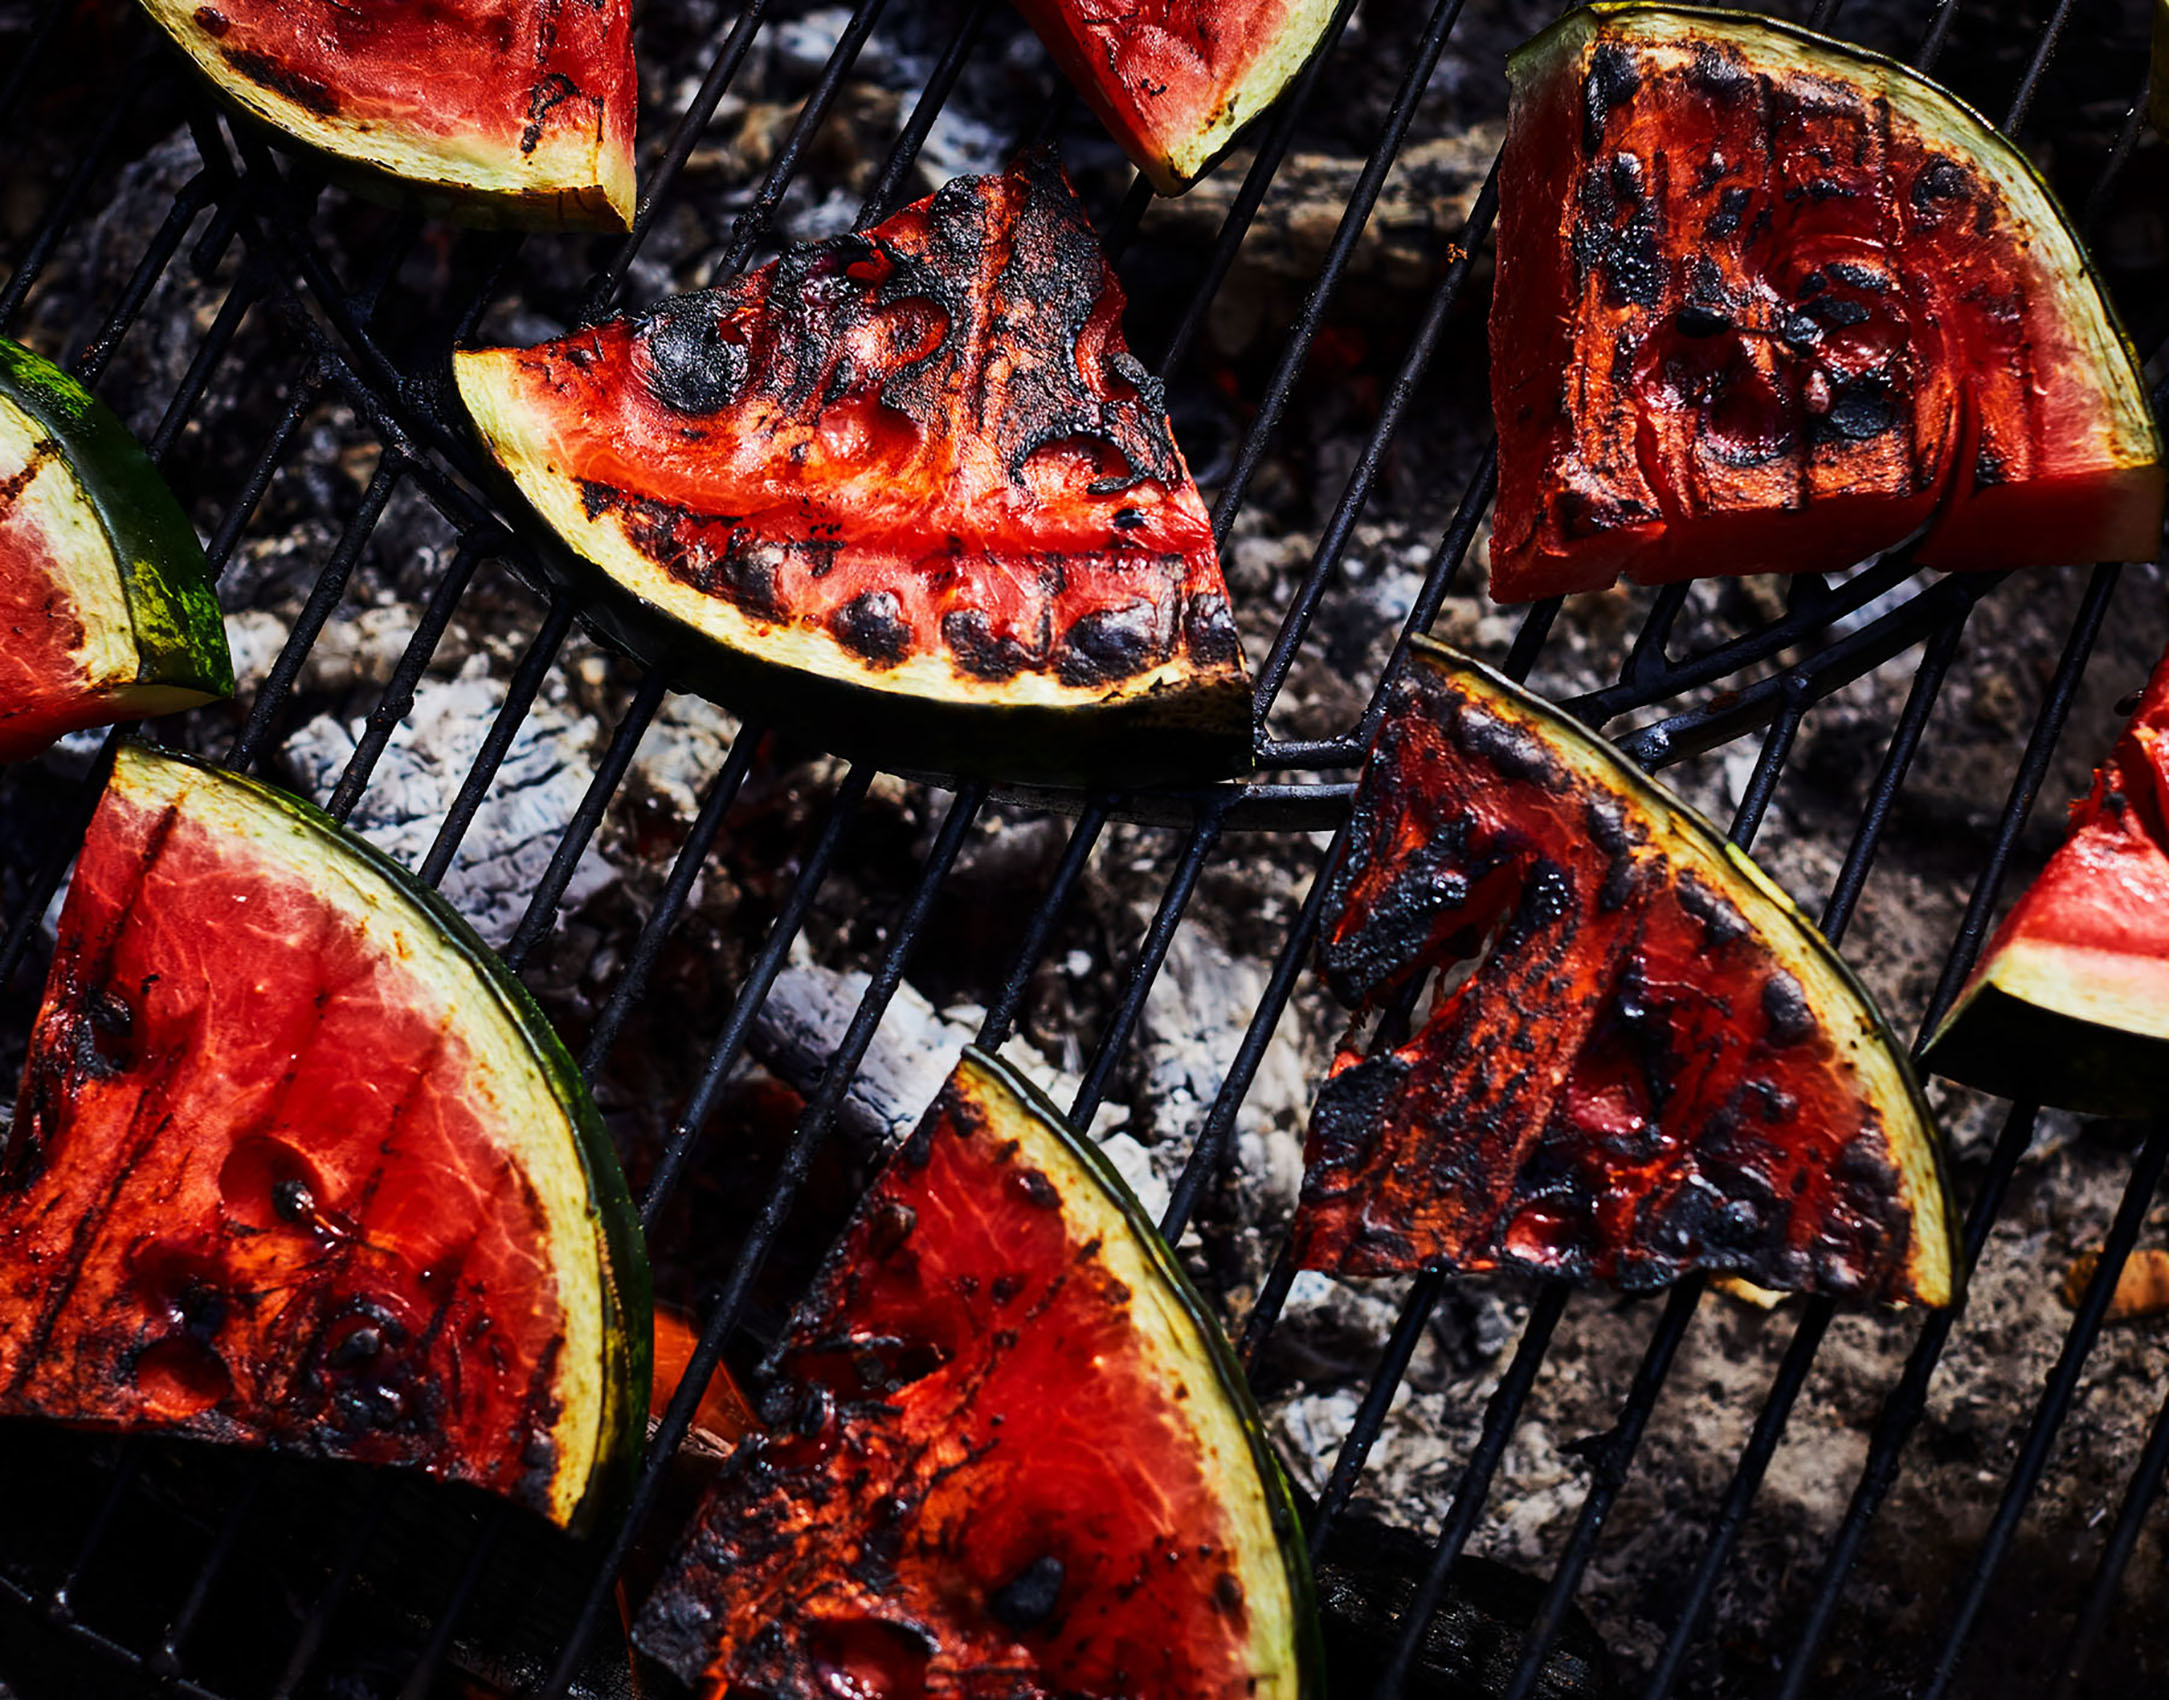 SteveRyan_Photographer_Ingredients_Produce_Vegetables_Watermelon_BBQ_25